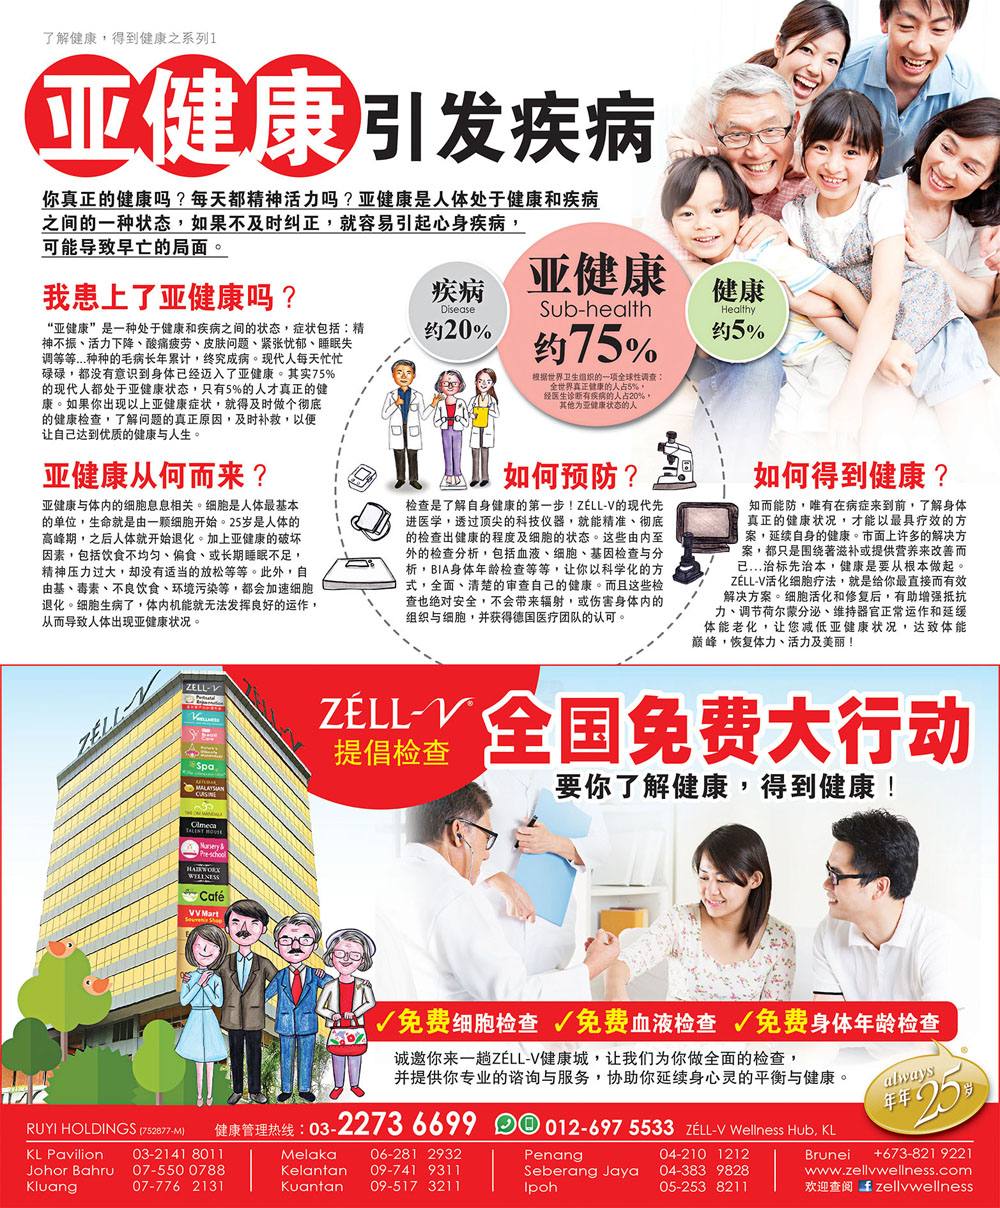 ZÉLL-V Wellness Hub @ Star副刊 (April' 17)